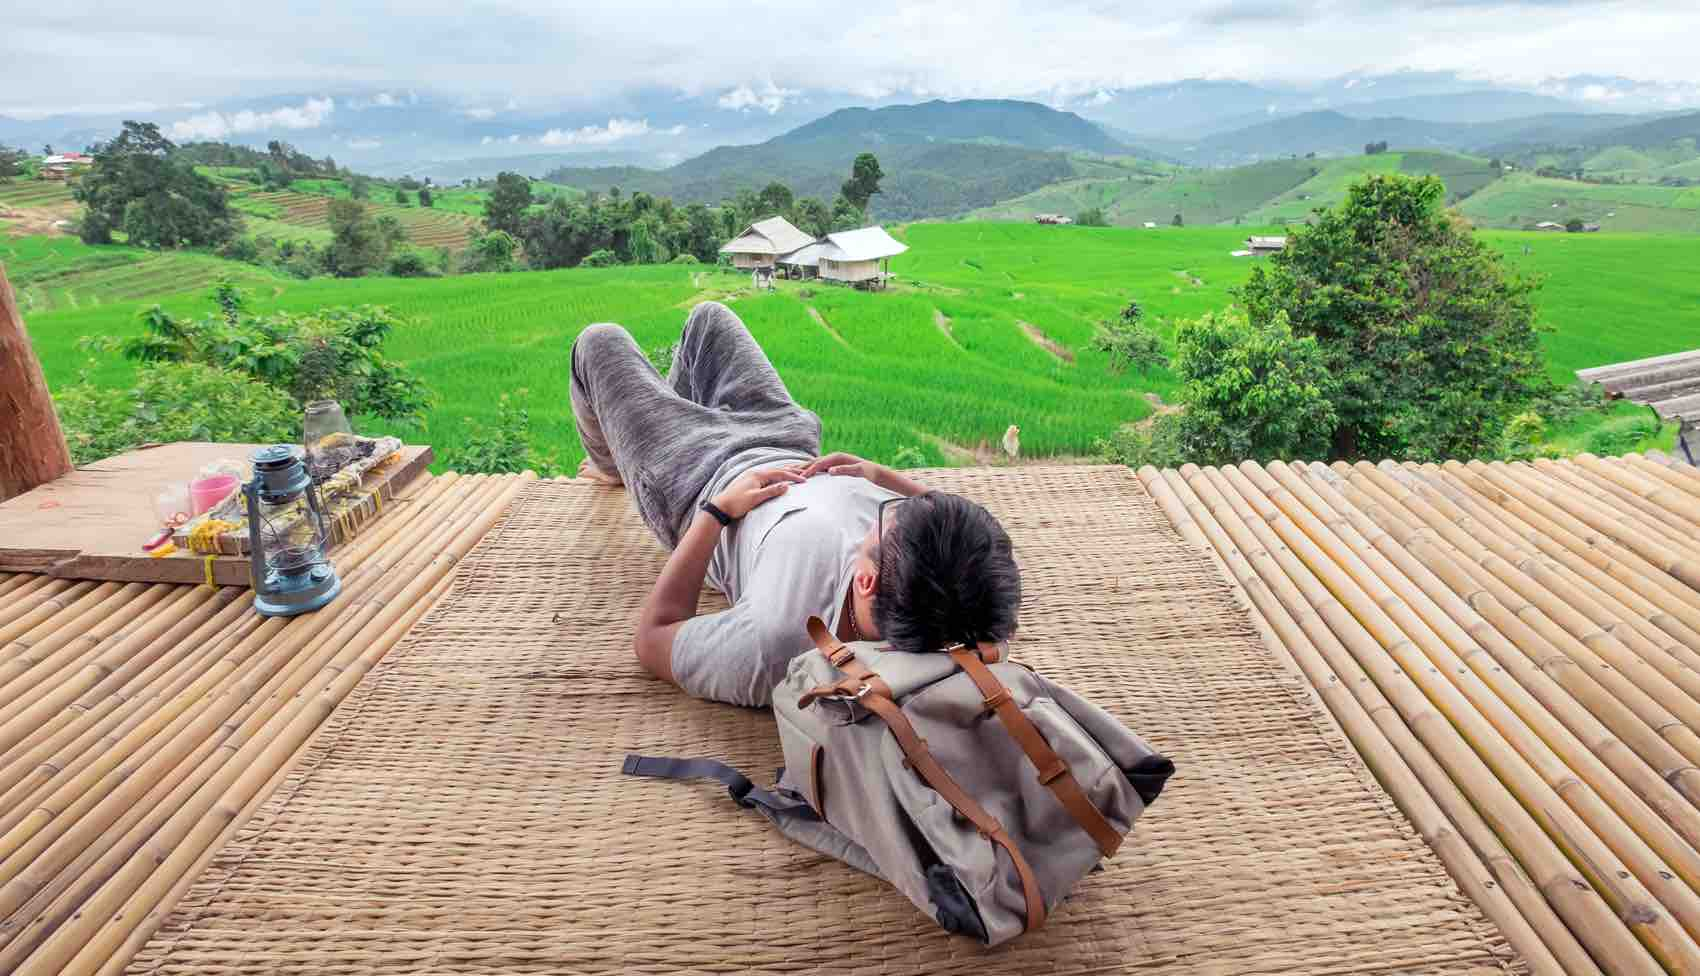 SLOW TRAVEL: A backpacker in Chiang Mai, the north of Thailand. Chill out and slow life in the open air balcony bamboo cottage looking out to beautiful rice terrace view.